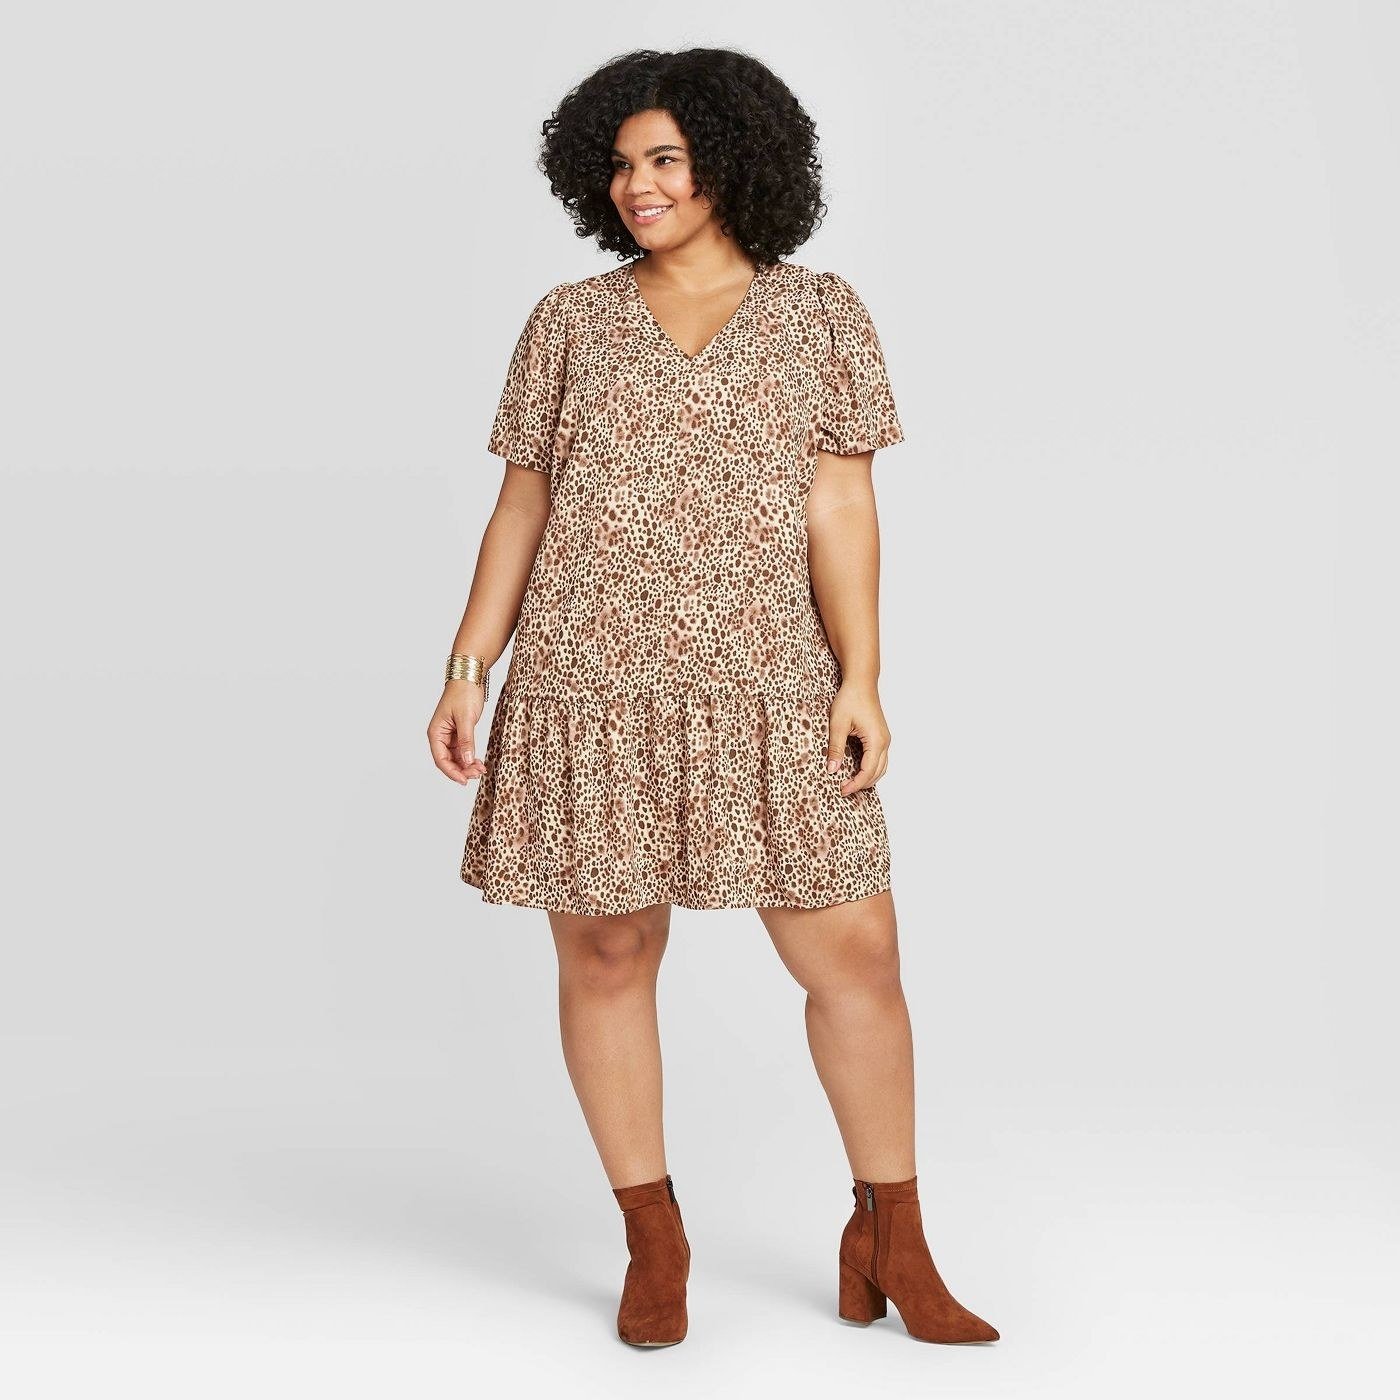 Model wearing the dress with puff sleeves, v-neck, and ruffle across the bottom hem in brown spotted print